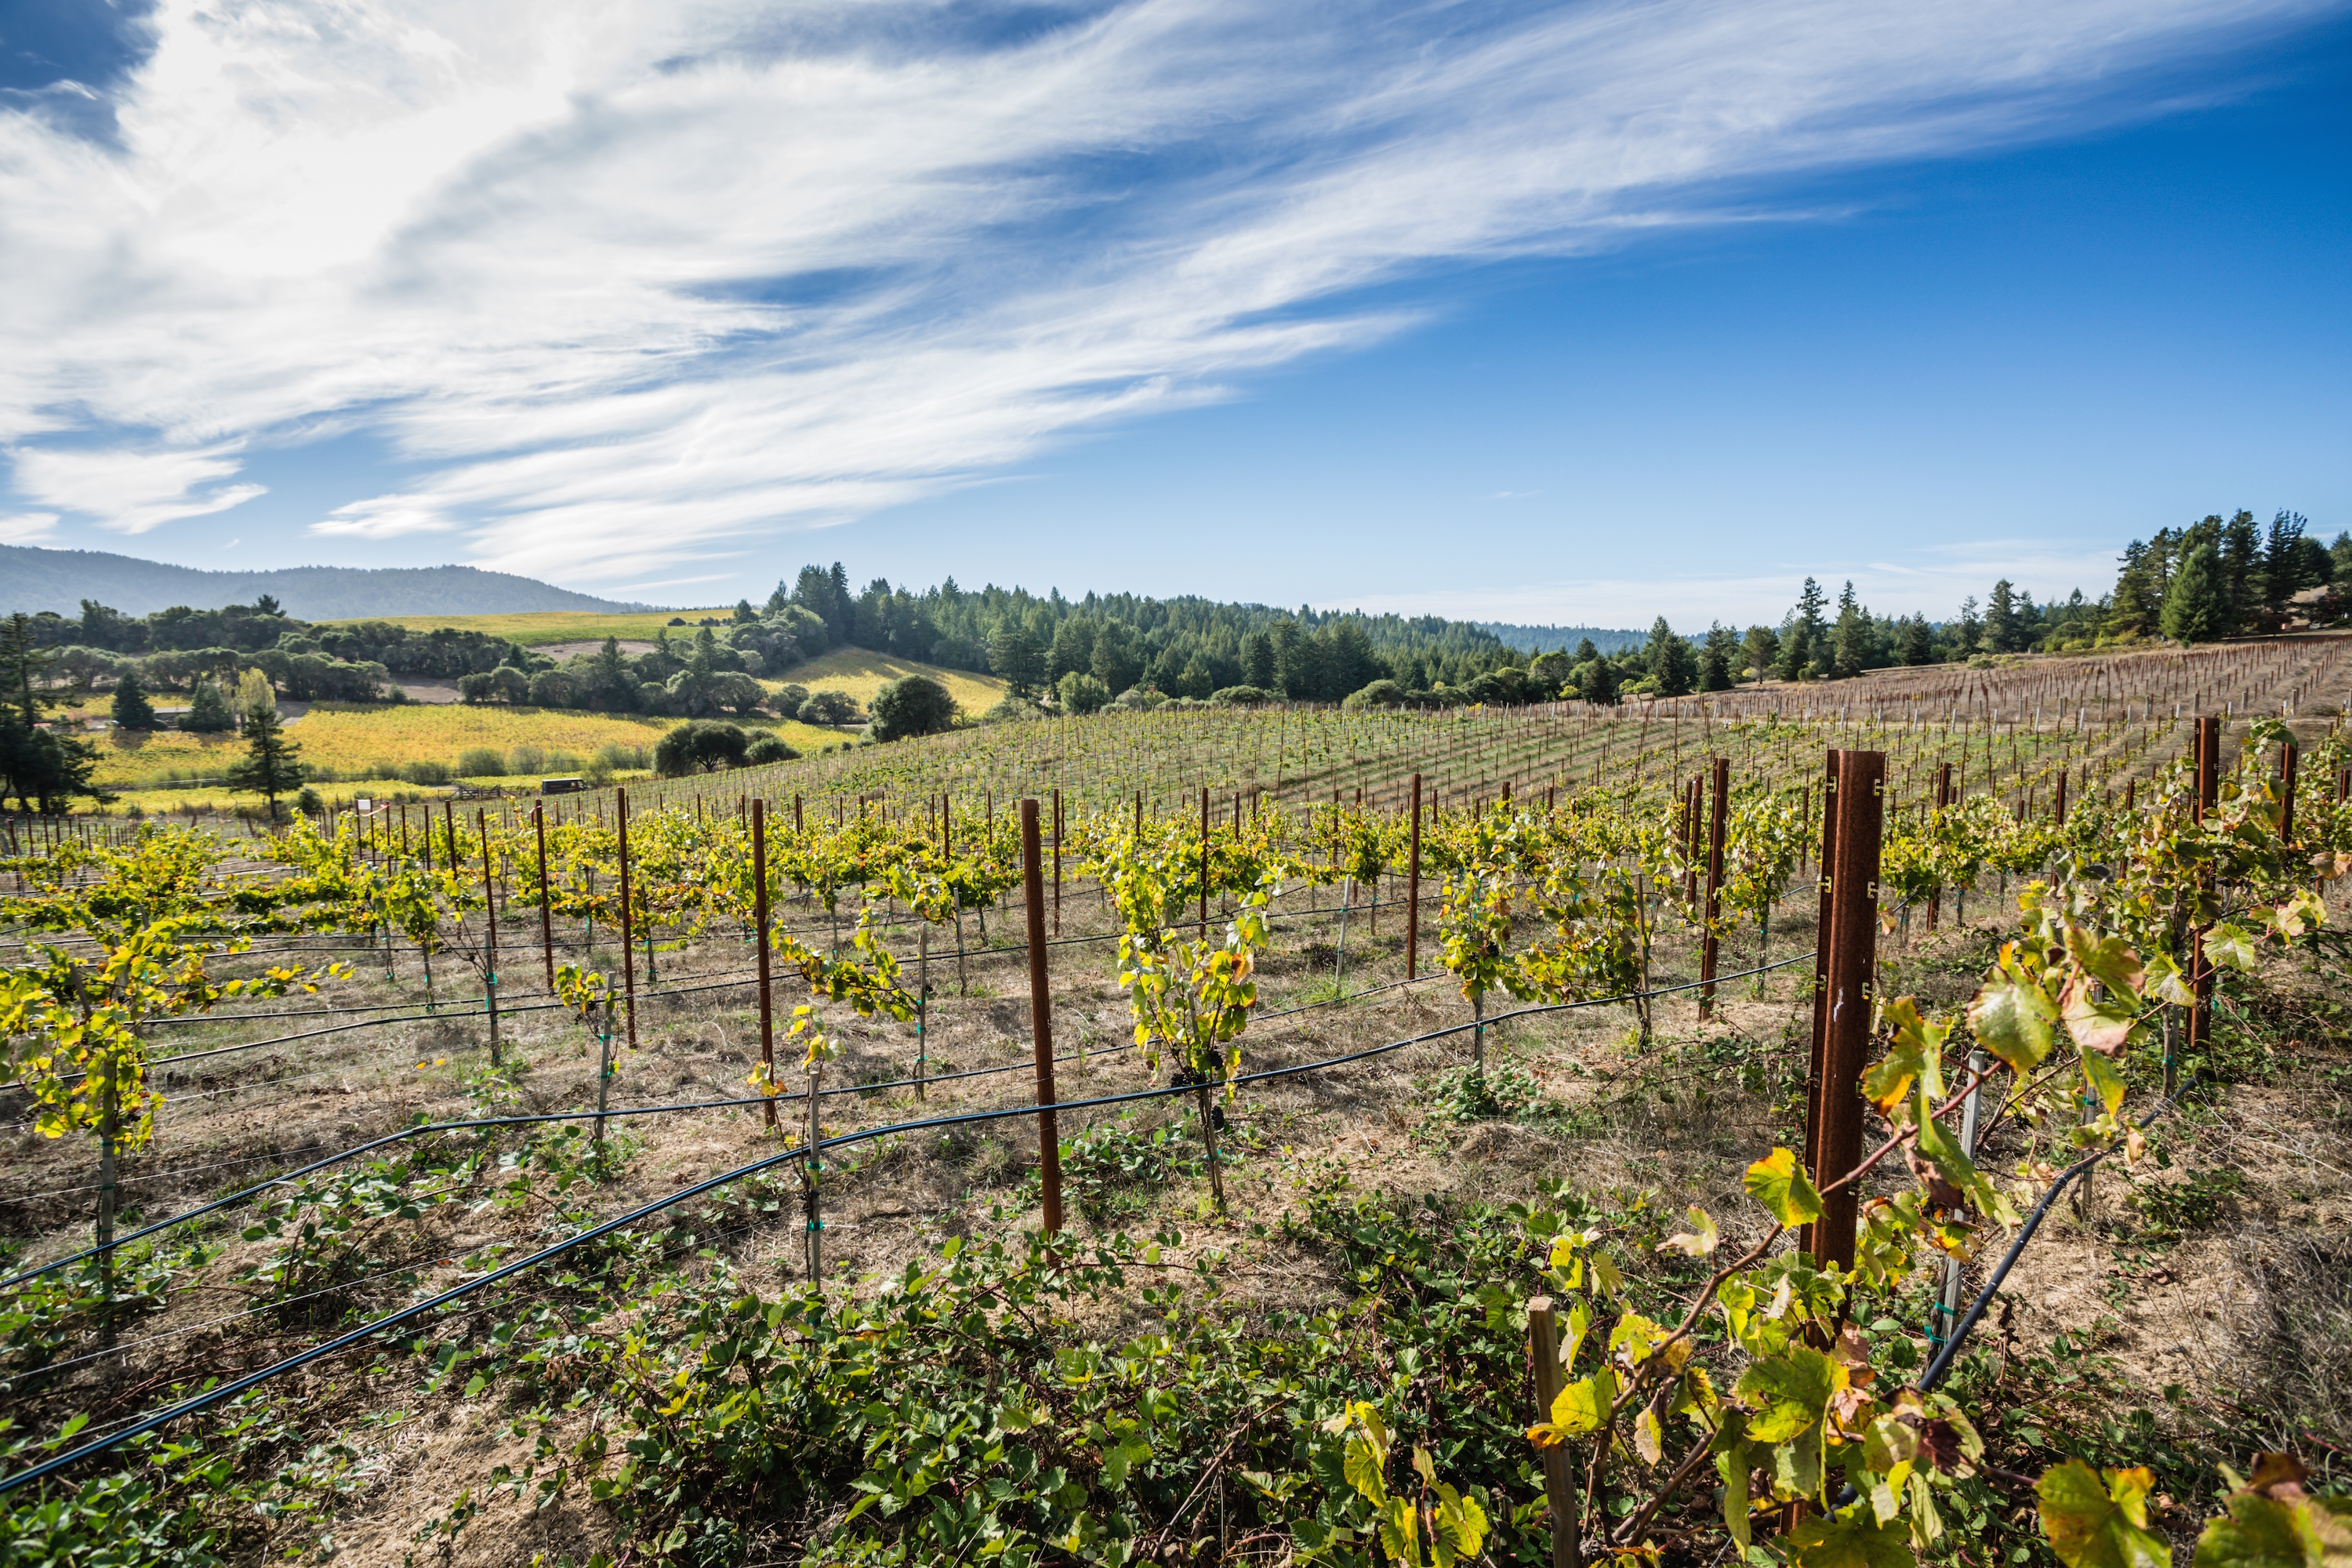 Lula Cellars vineyards & Lula Cellars Offers Exclusive Limited Production Wines